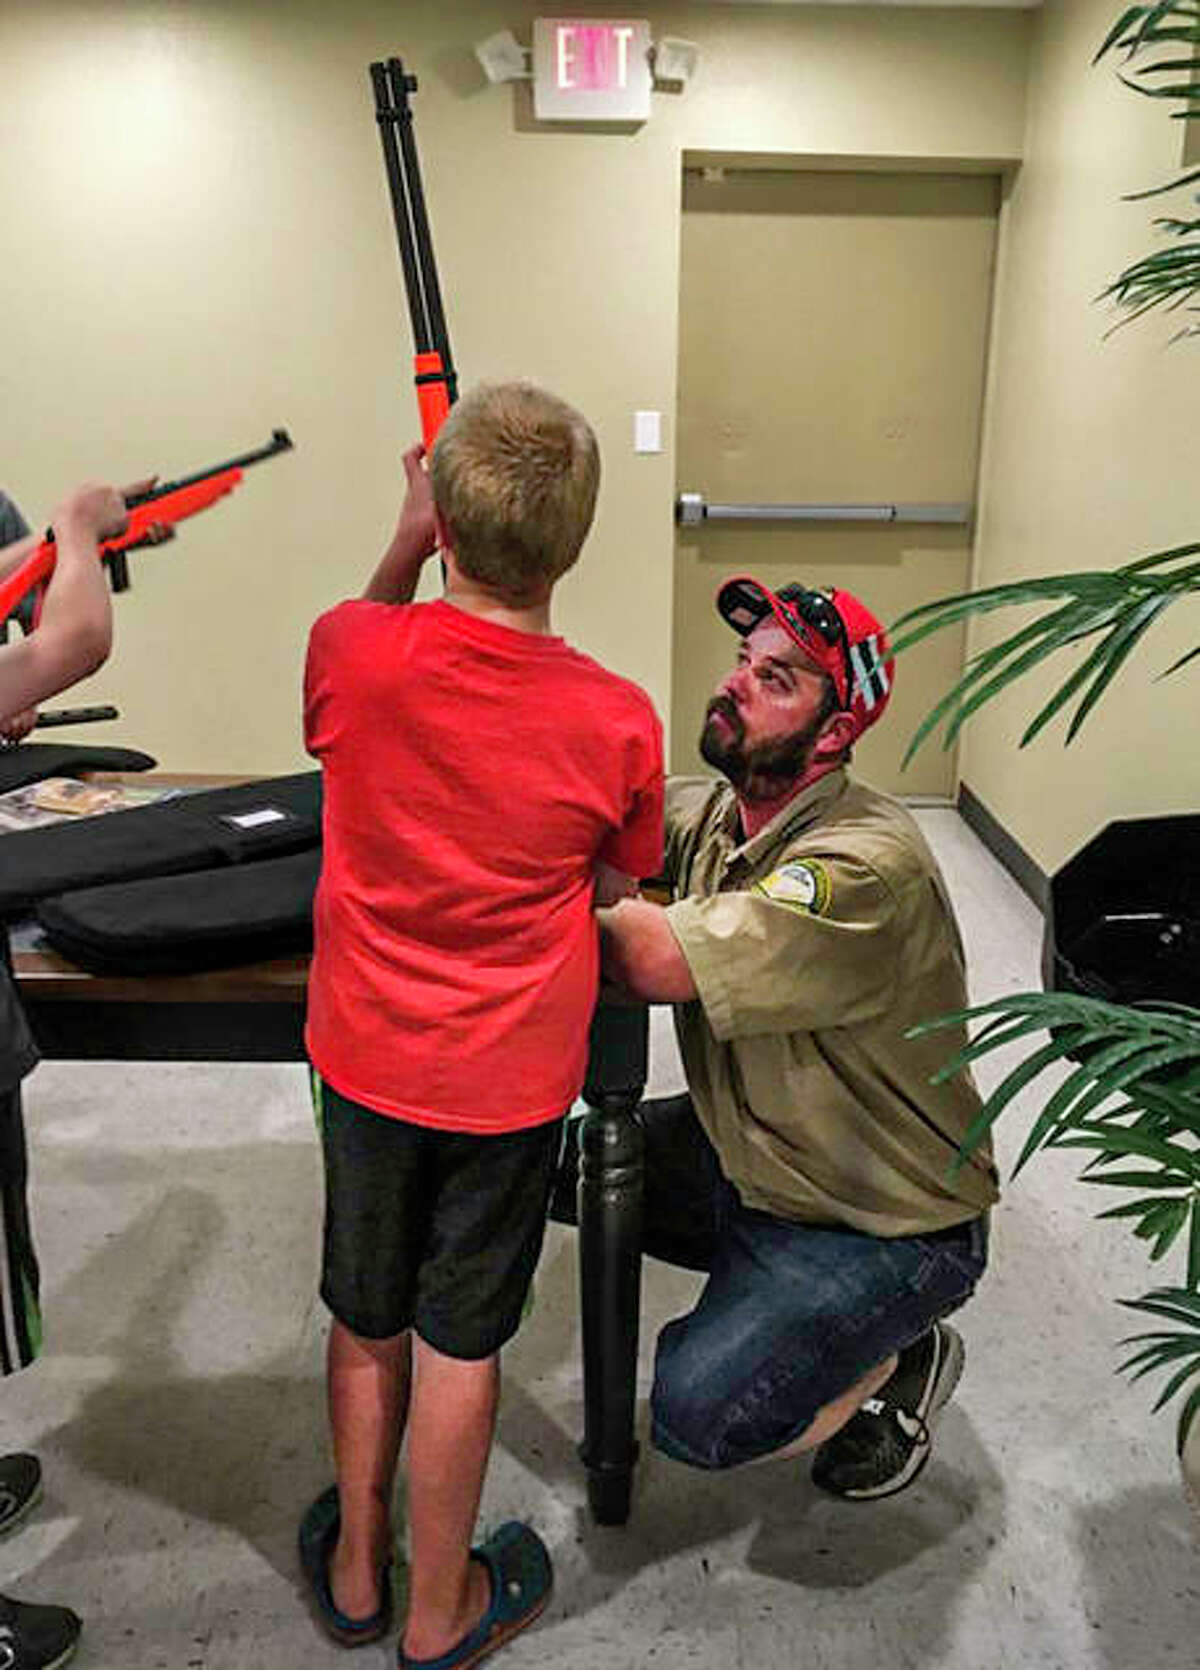 An instructor works with a youngster during an in-person hunting safety course provided by the Illinois Department of Natural Resouces prior to COVID-19.